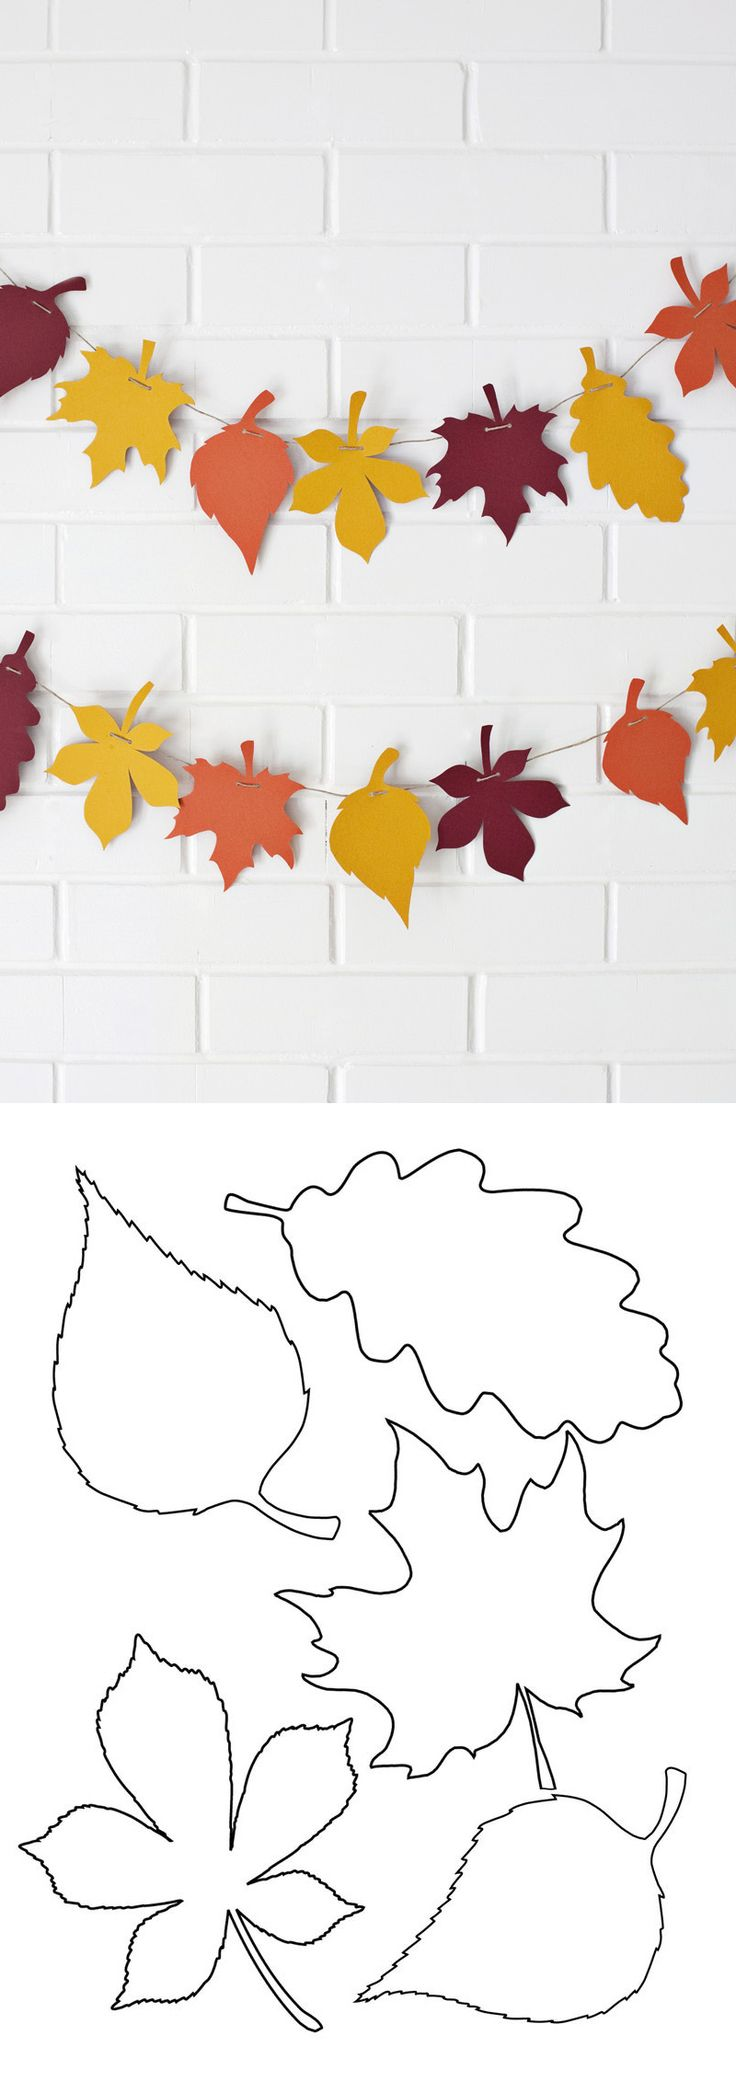 681 best ősz images on Pinterest | Fall crafts, Crafts for kids and Fall